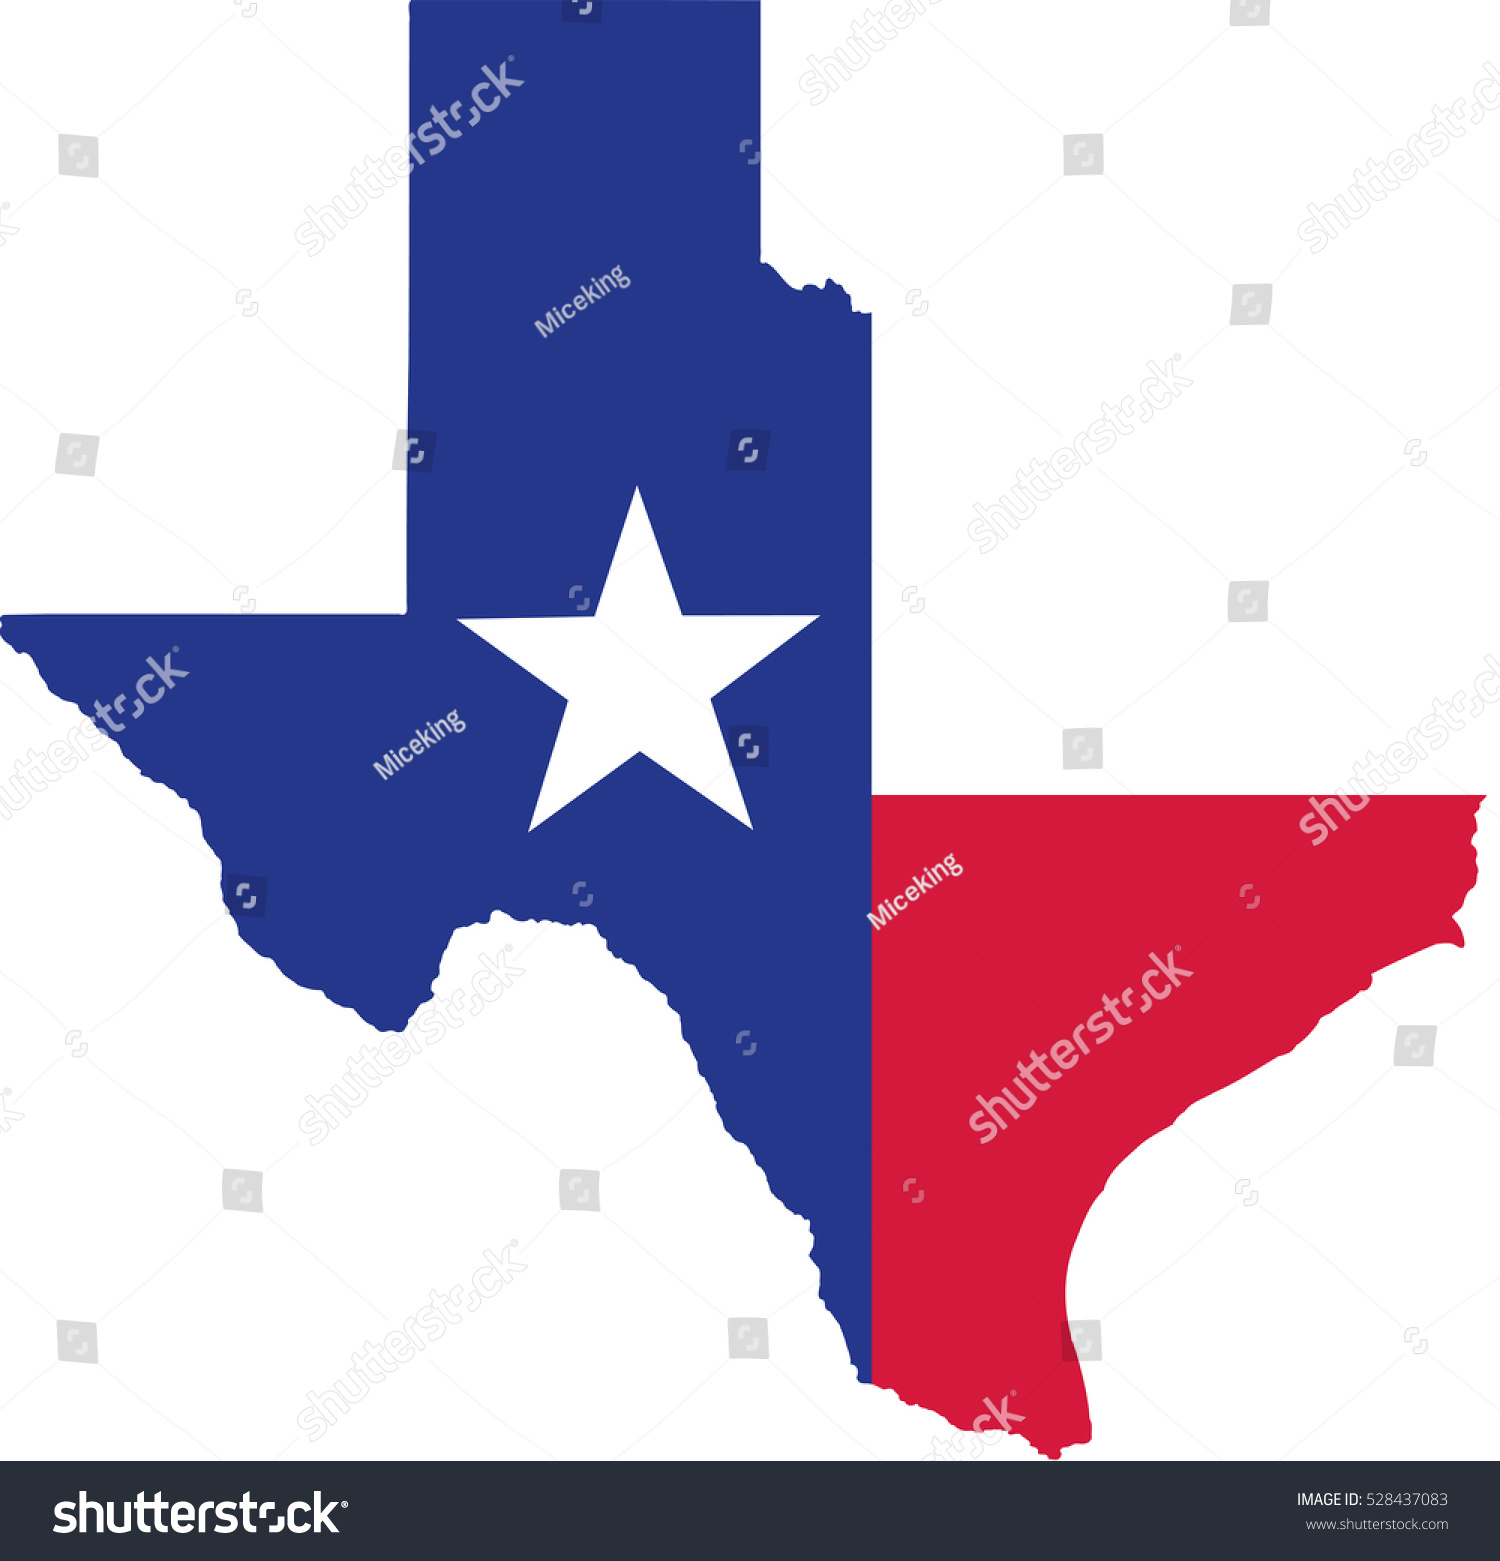 Texas State Map Flag Stock Vector Shutterstock - Texas state map images